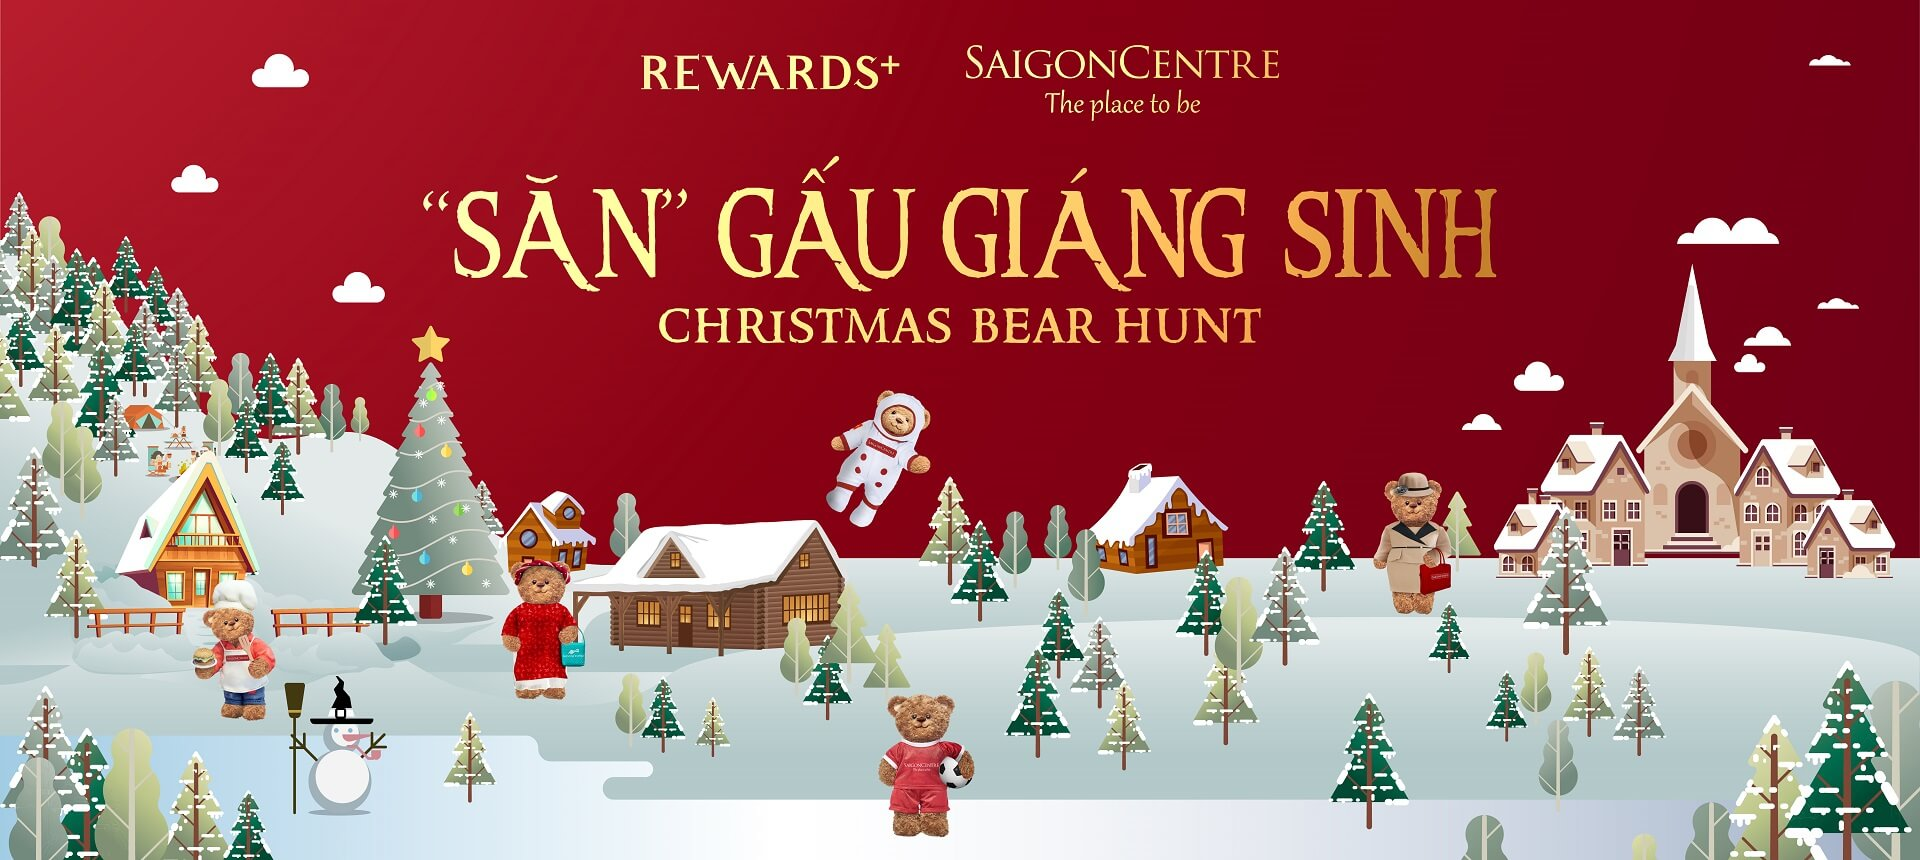 CHRISTMAS BEAR HUNT